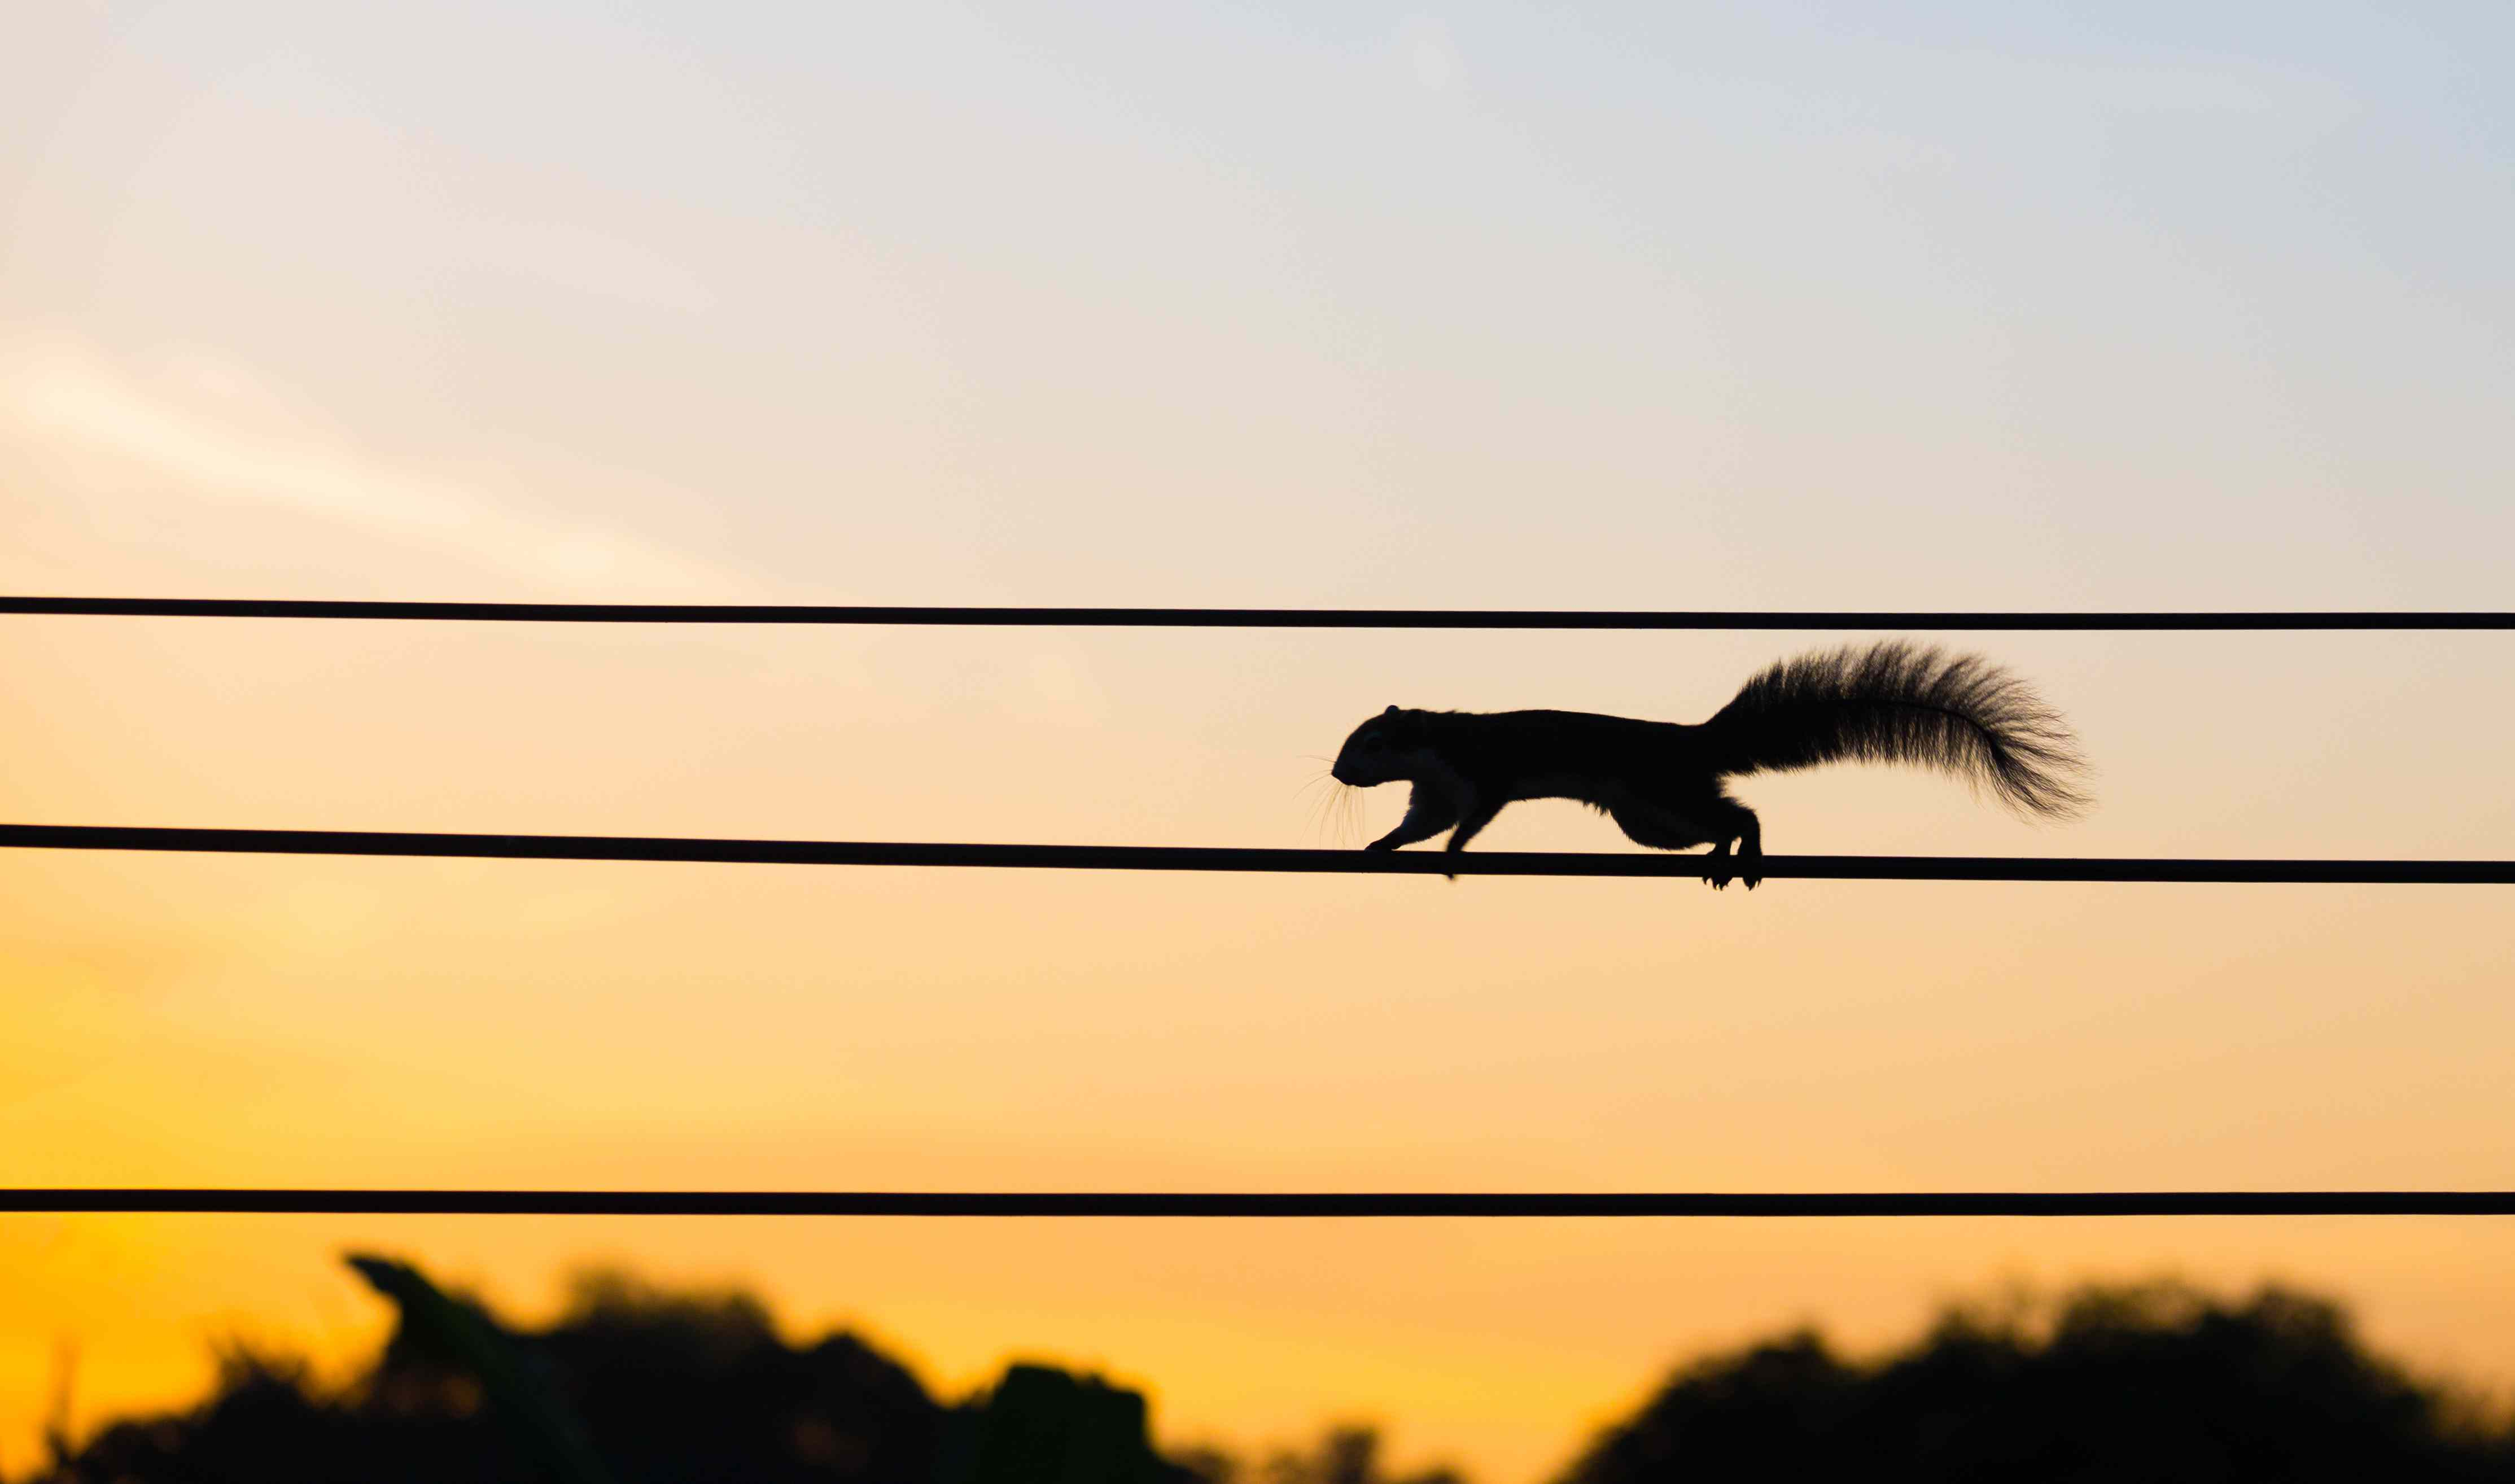 squirrel on power lines